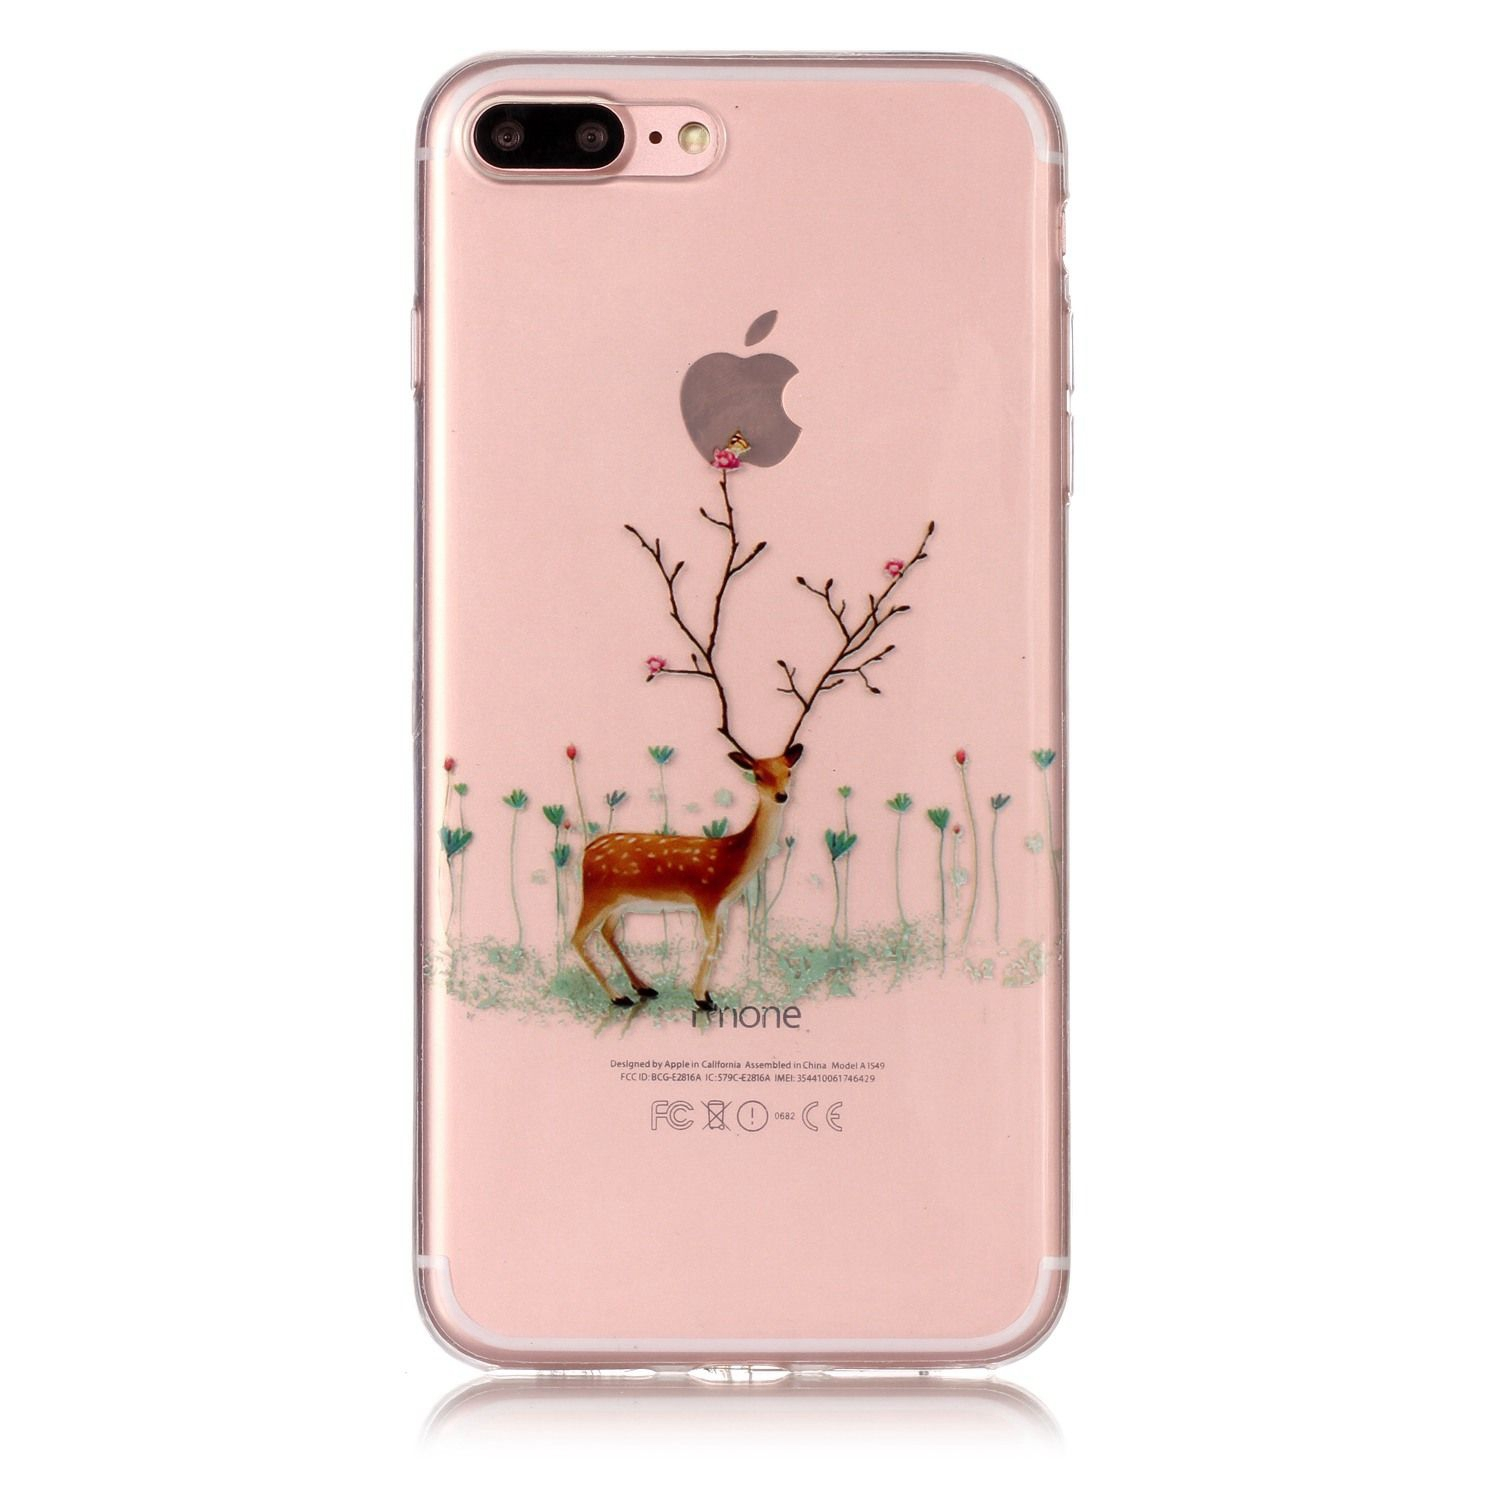 TPU Soft Shockproof Protective Phone Shell for iPhone7Plus Case Christmas Style Gifts